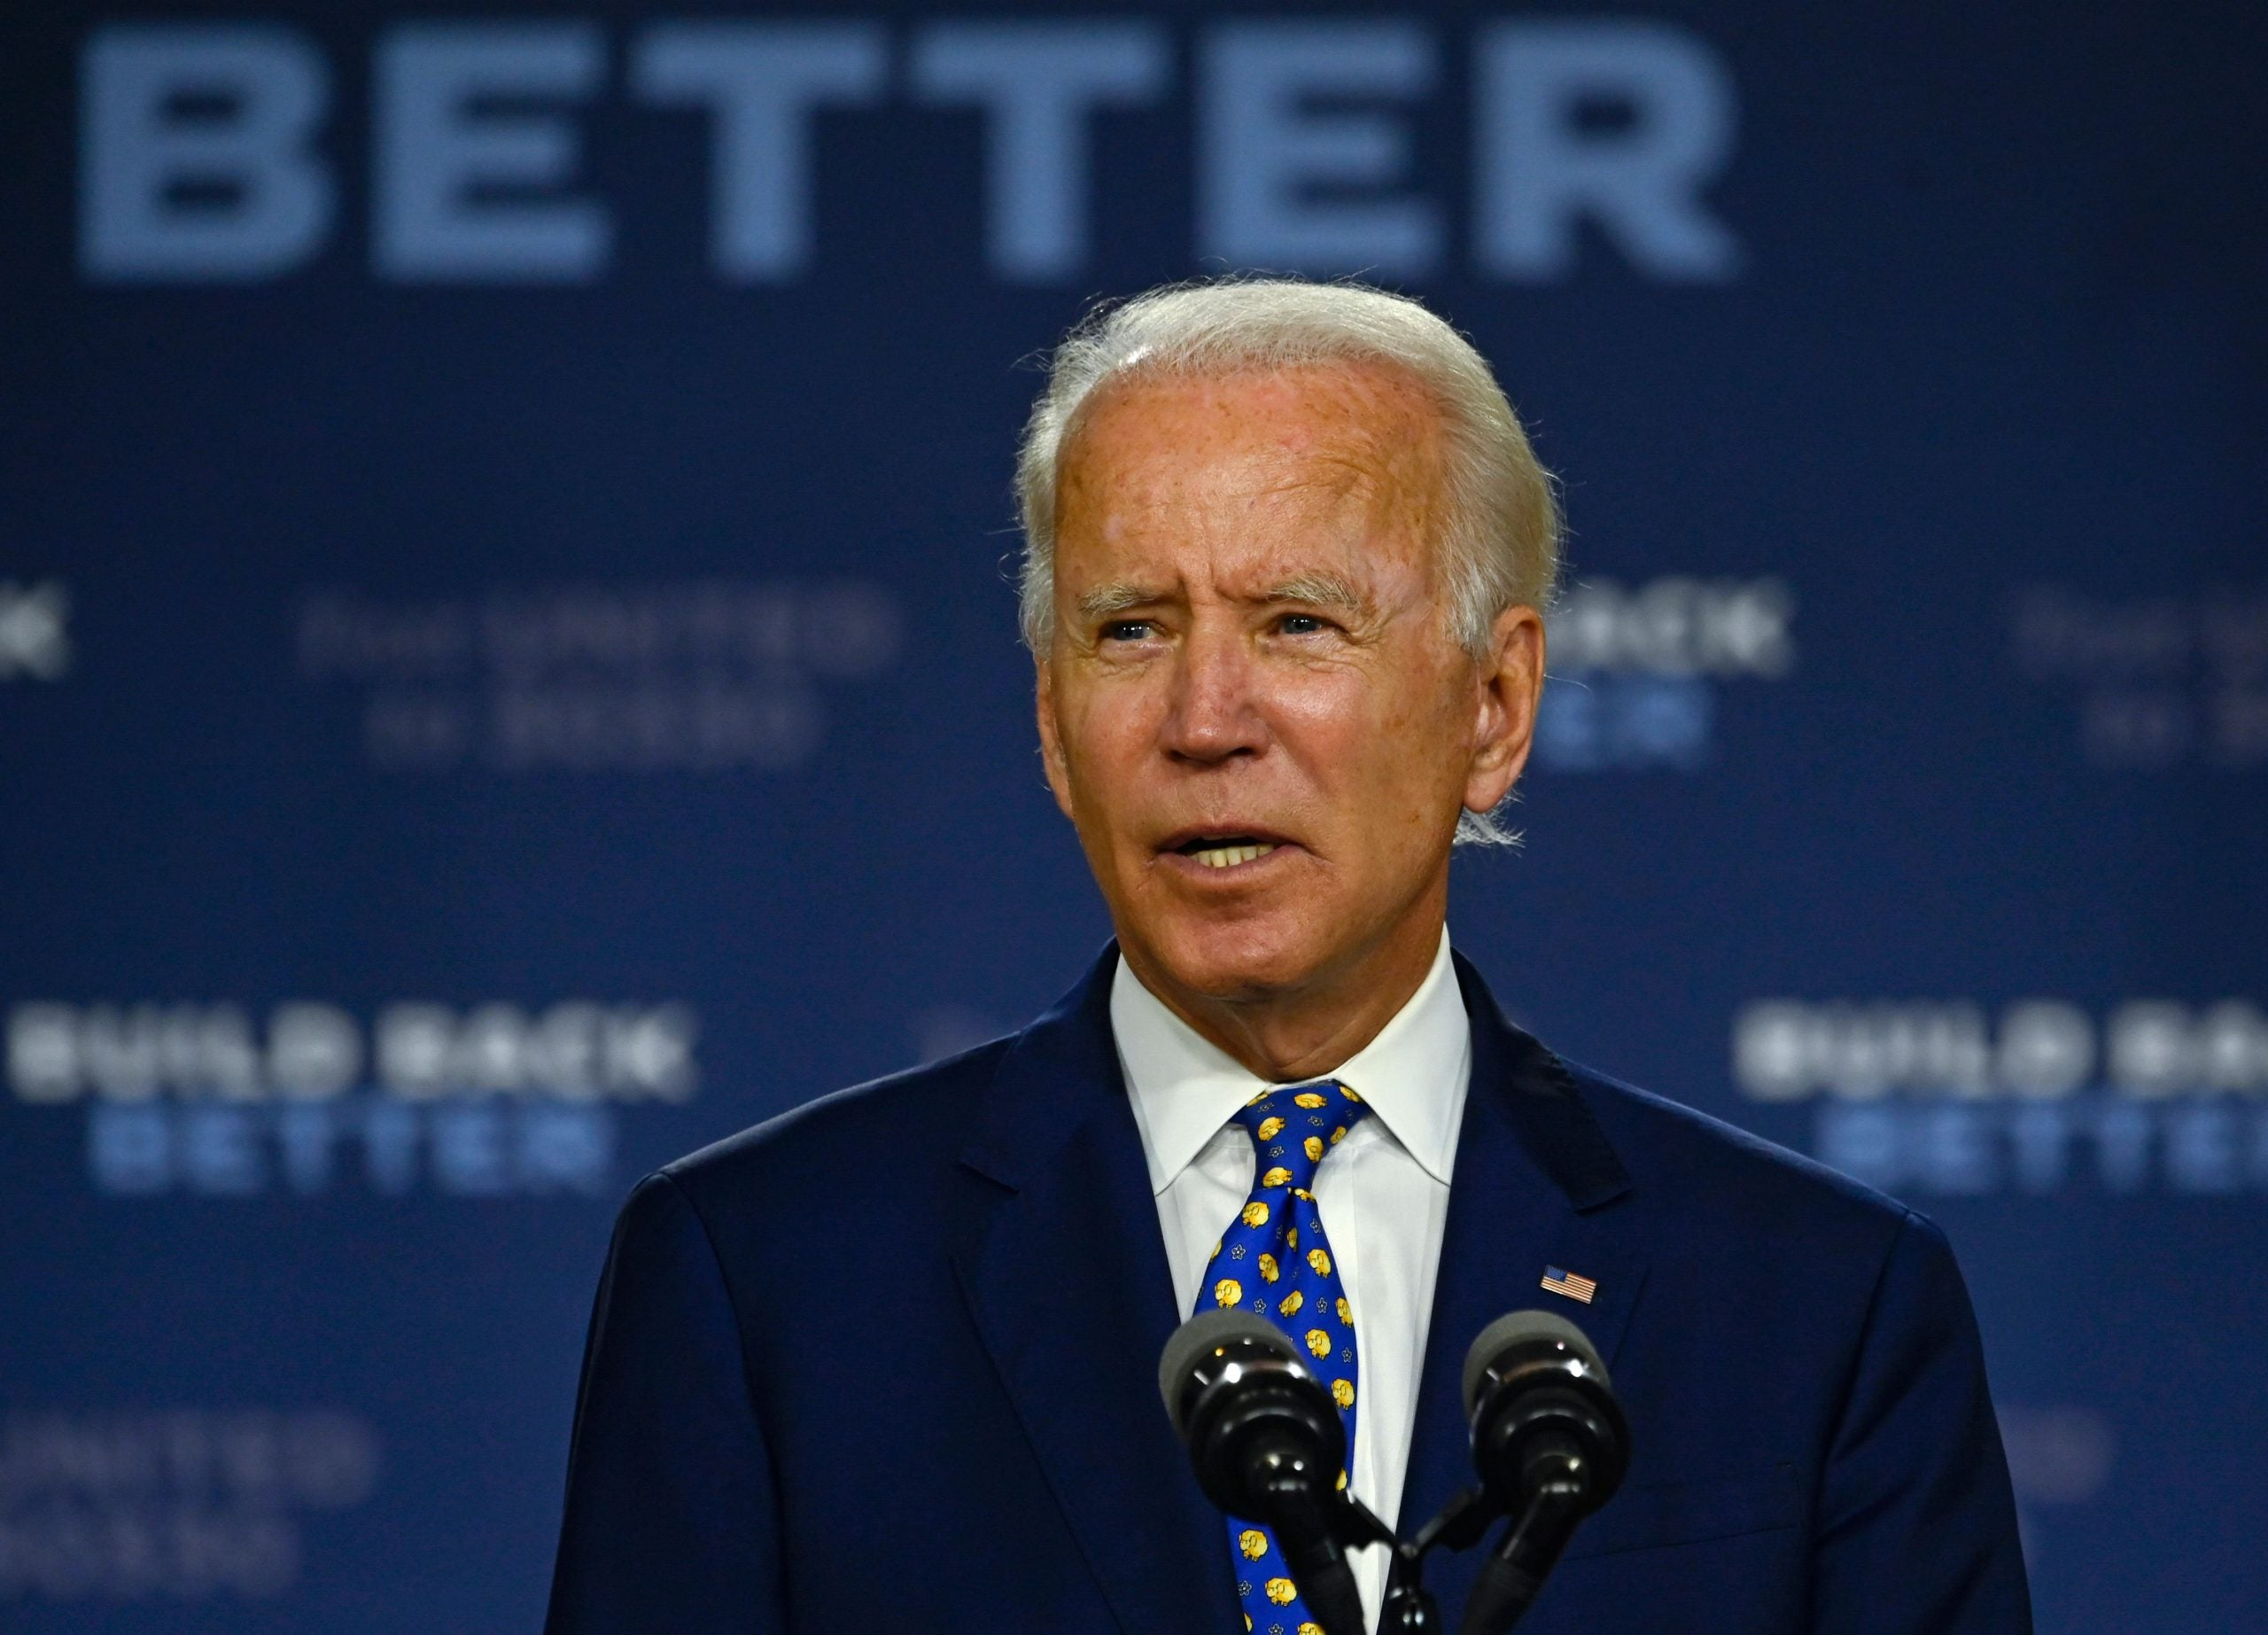 It's Official—All 50 States Have Formally Tallied Votes, Biden Is Clear Winner